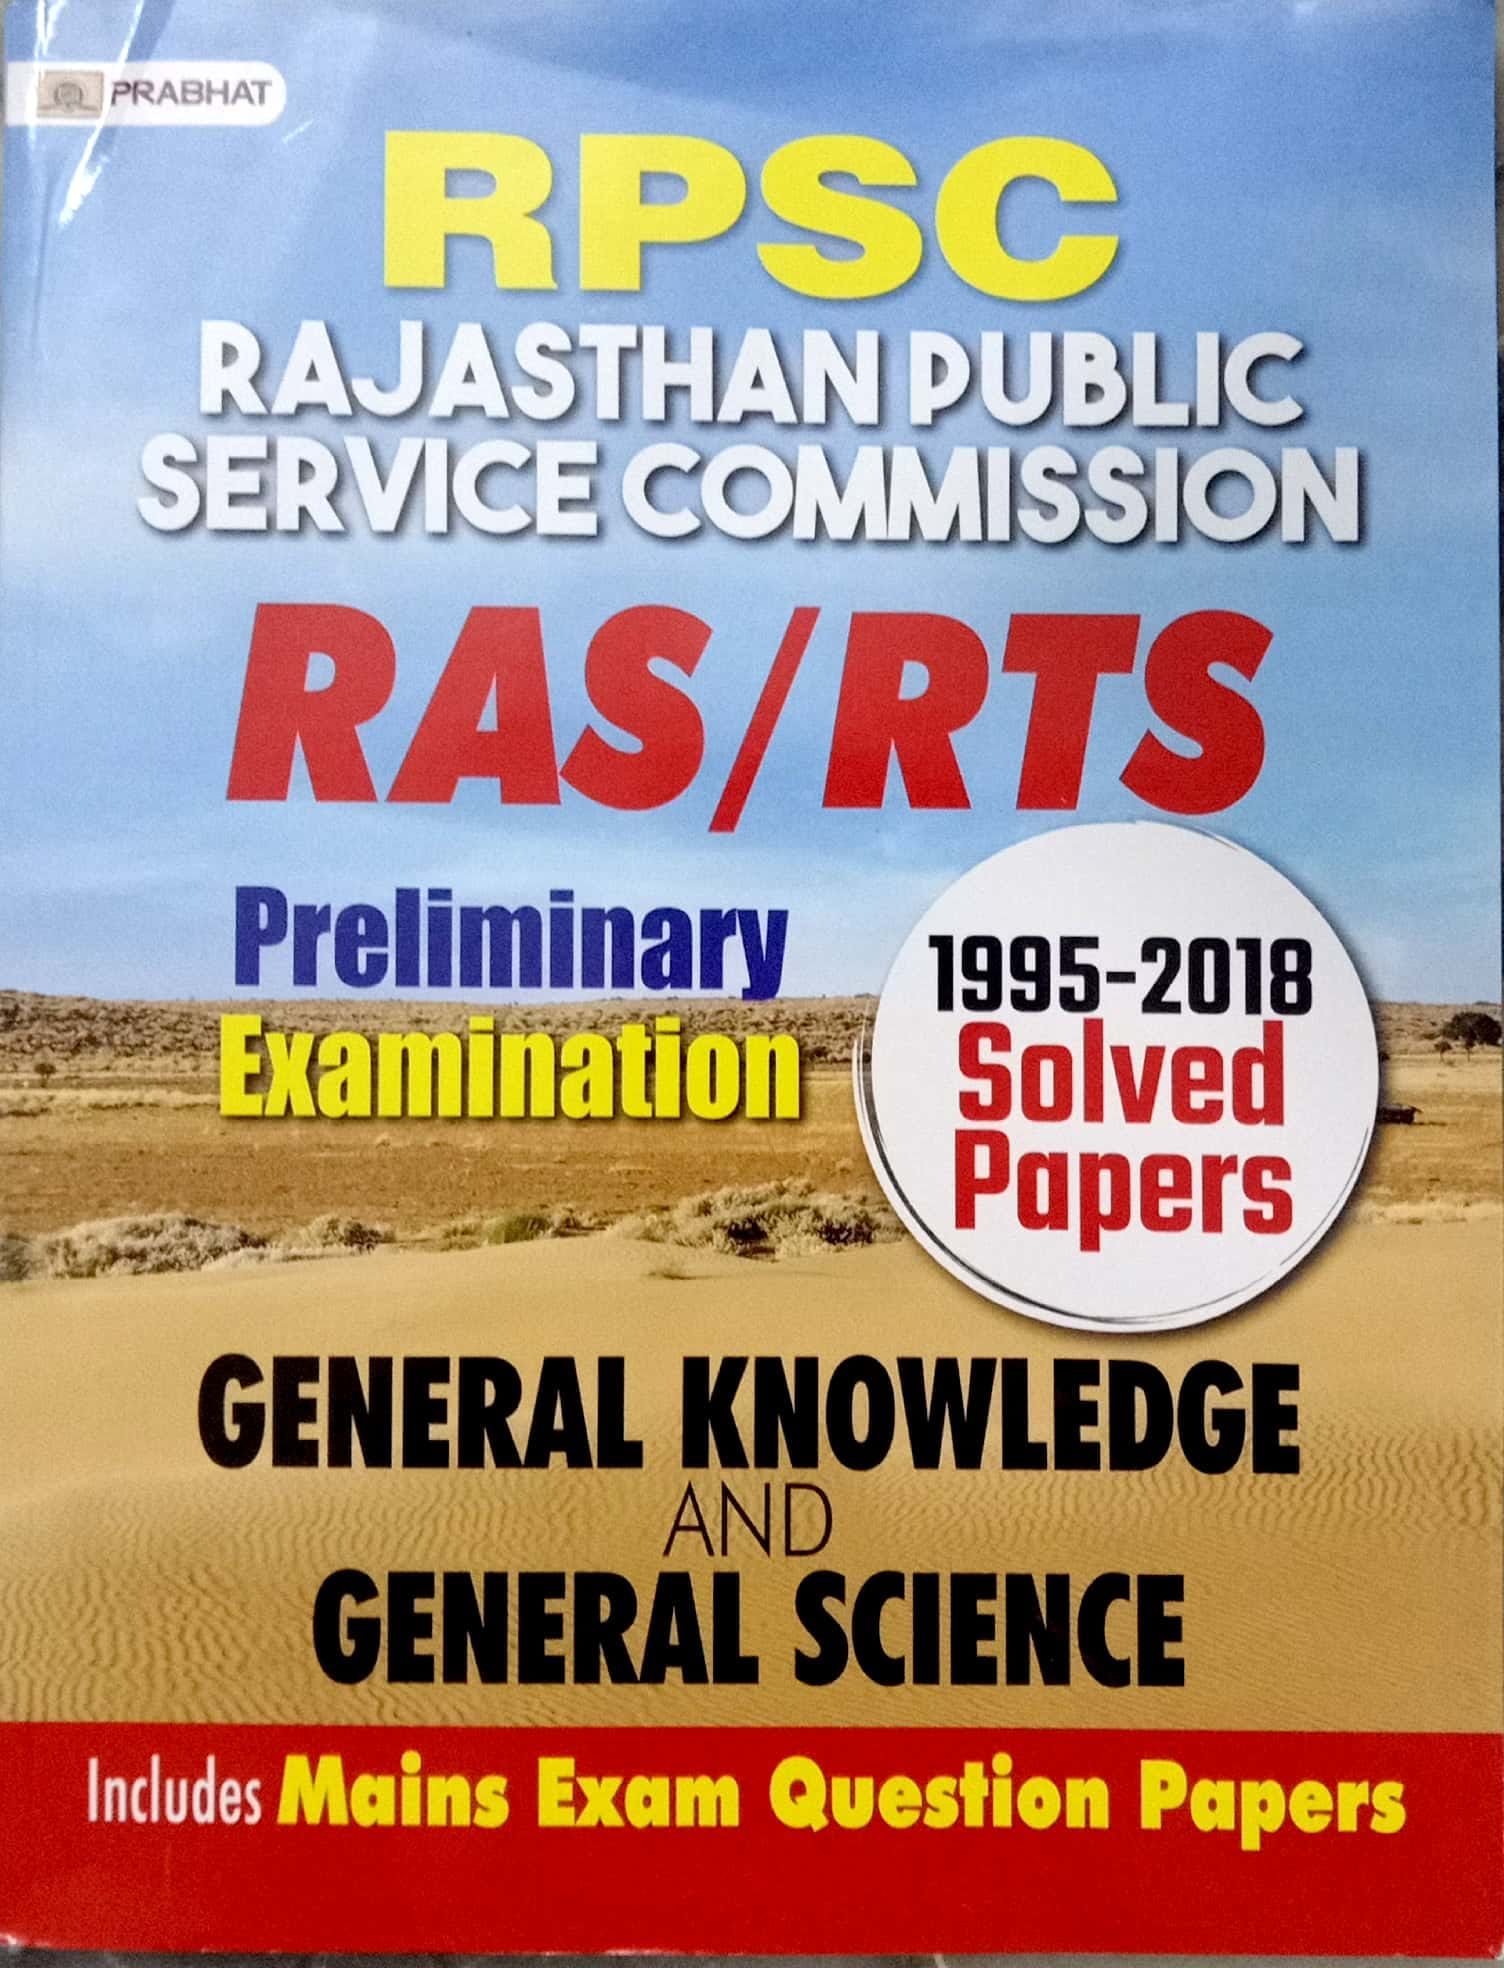 PRABHAT RPSC RAS/RTS PRELIMINARY EXAMINATION SOLVED PAPER  GK/ GENERAL SCIENCE 2021